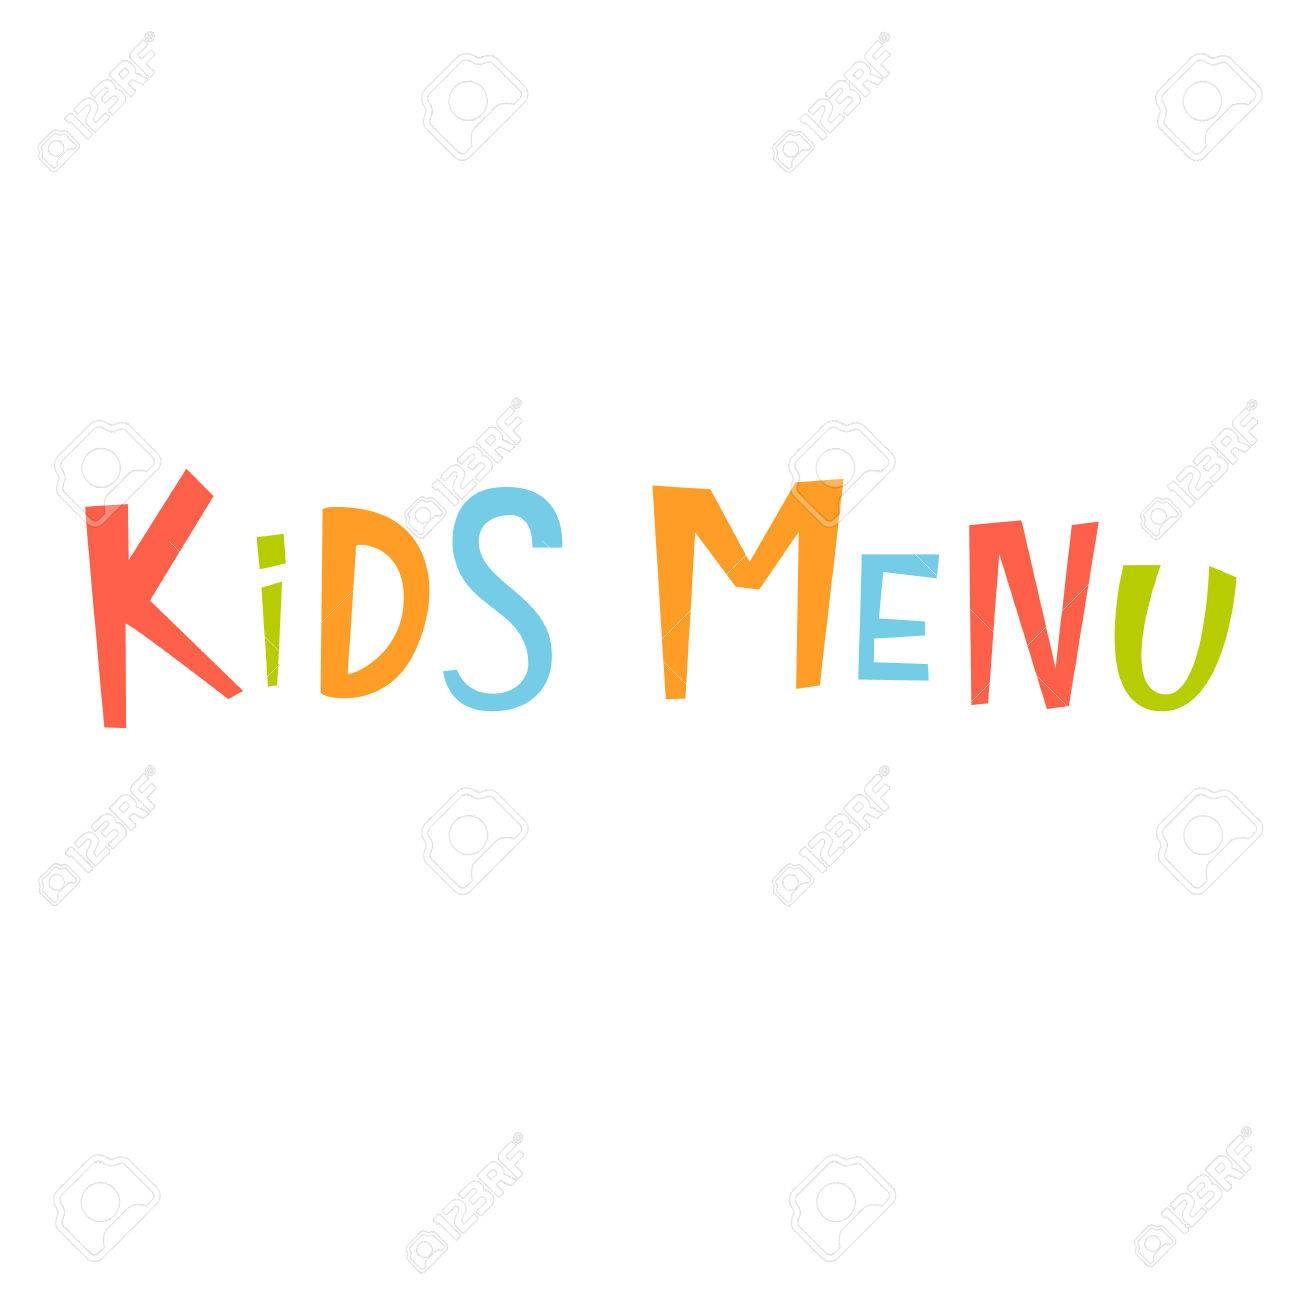 kids menu vector lettering. kids menu lettering isolated on white